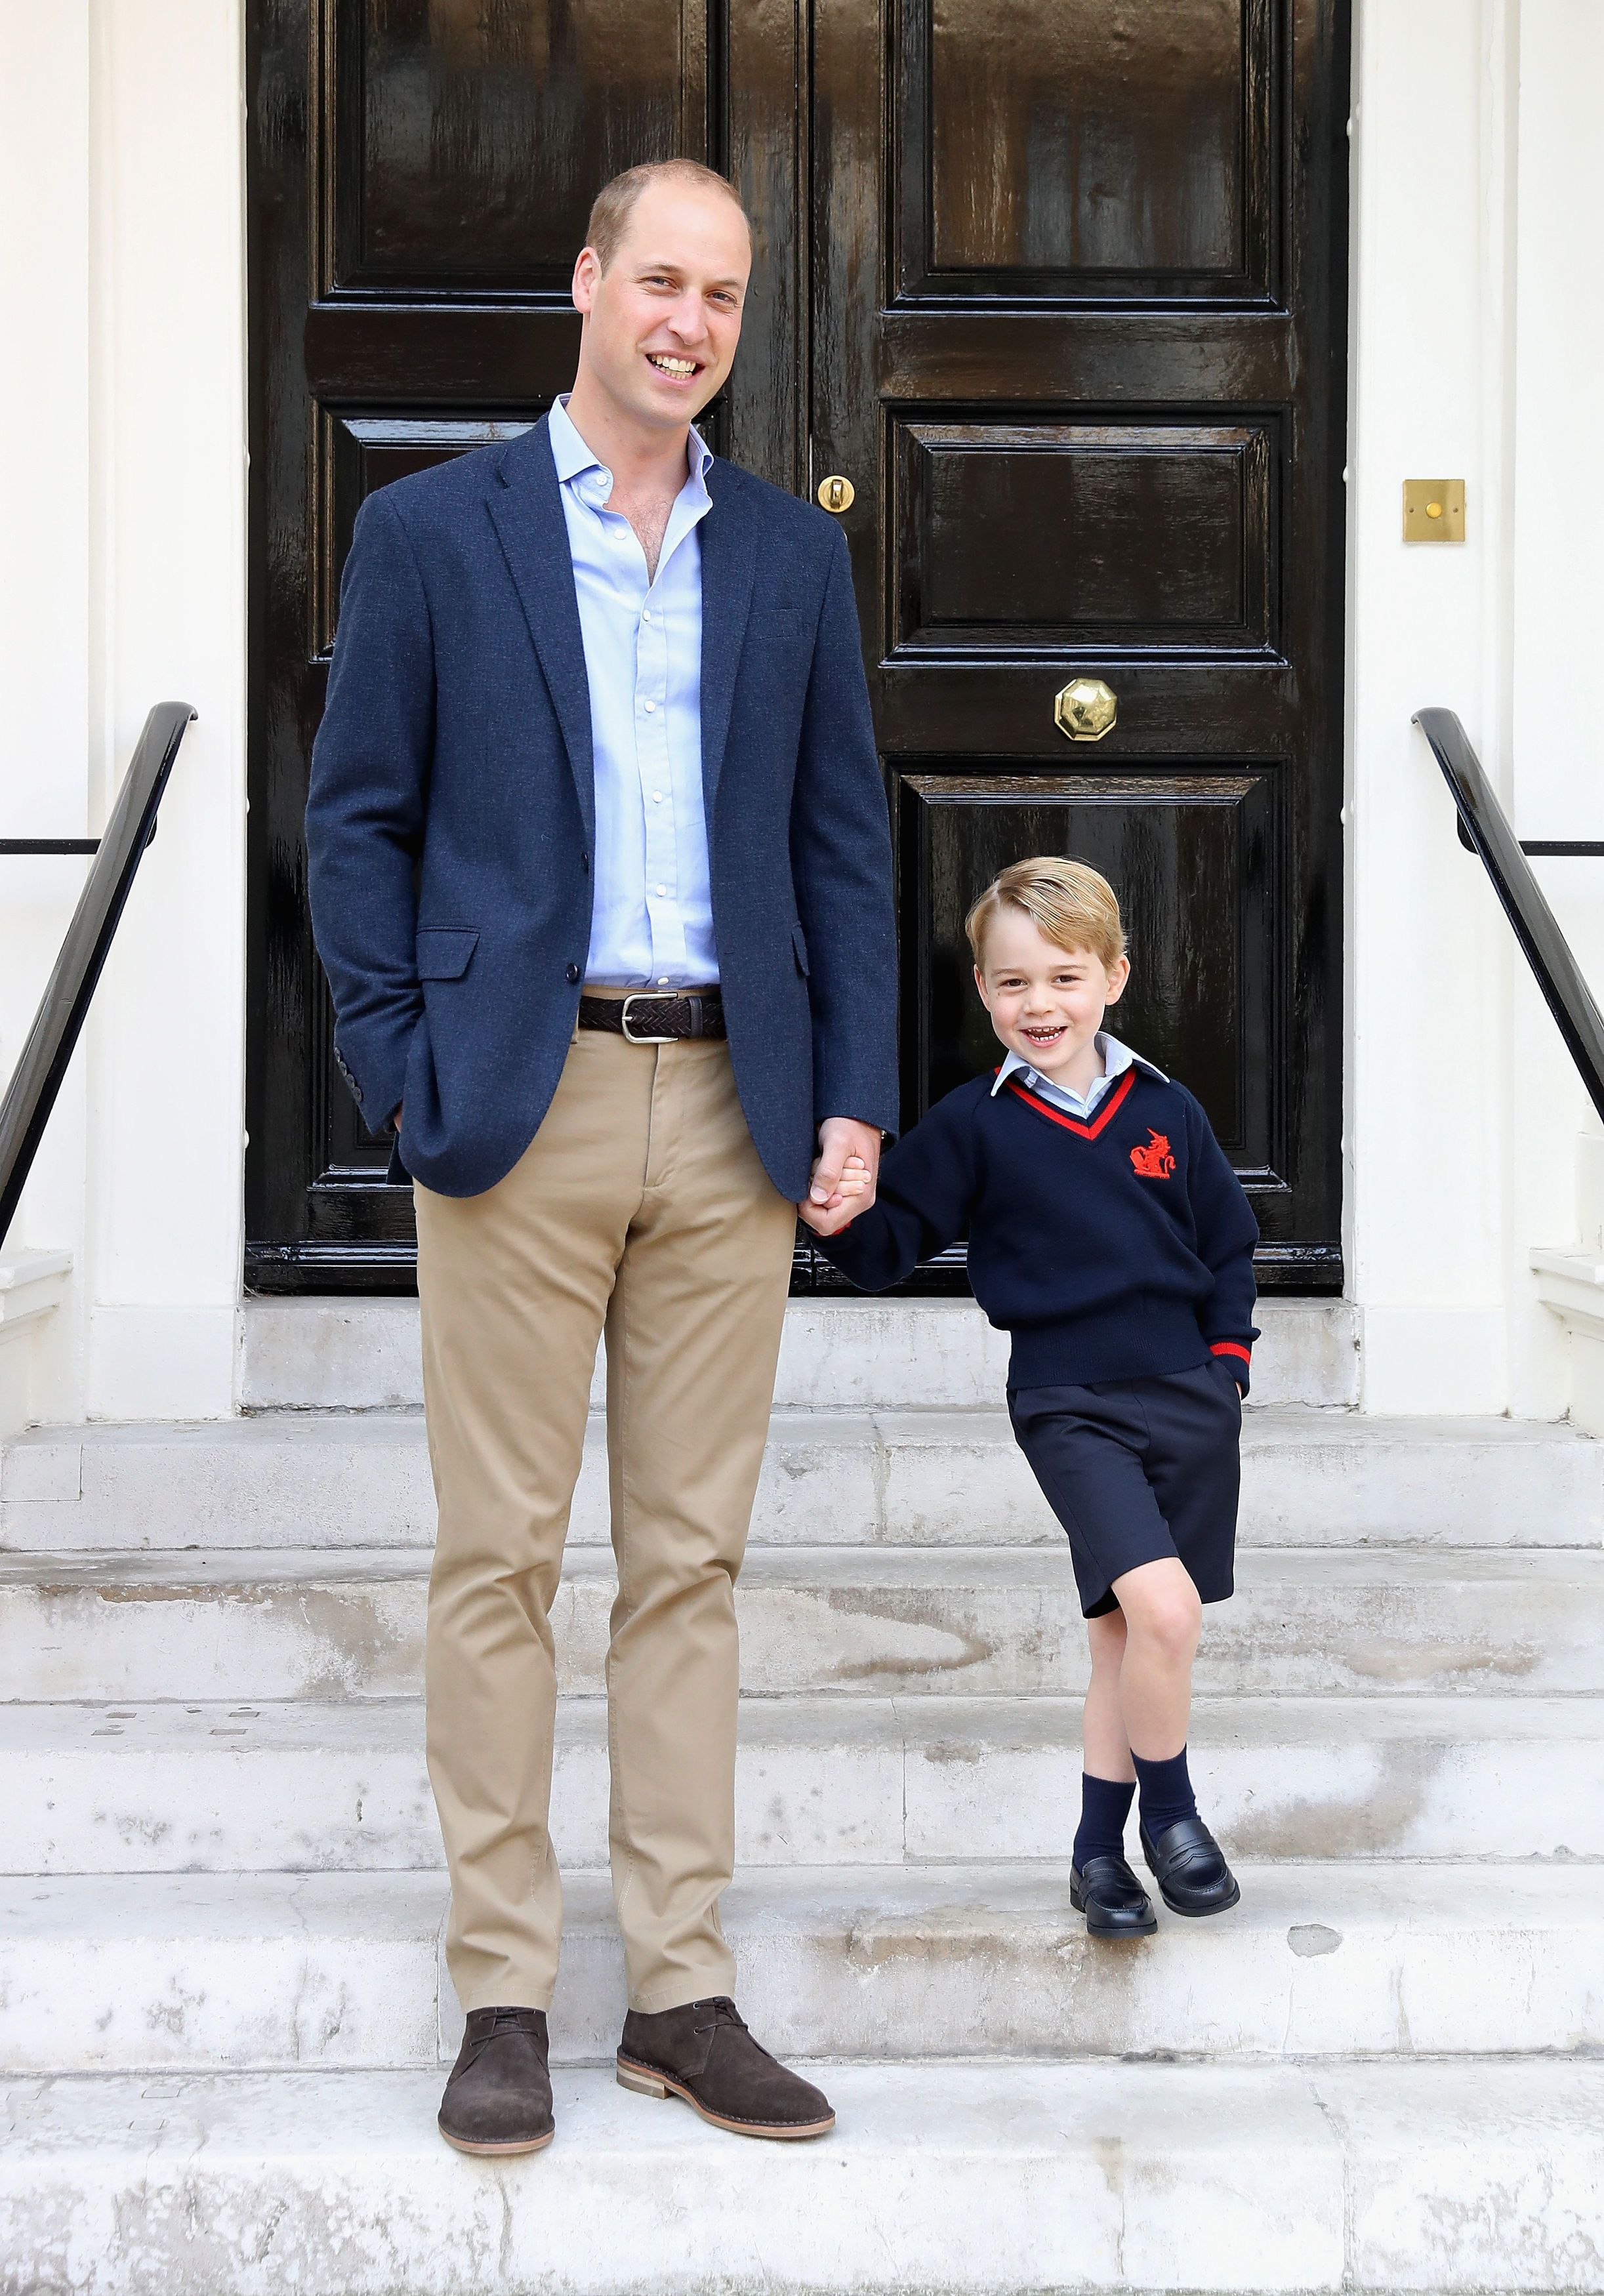 Prince George's First Day Of School Went 'Well' Reveals A Relieved Duke Of